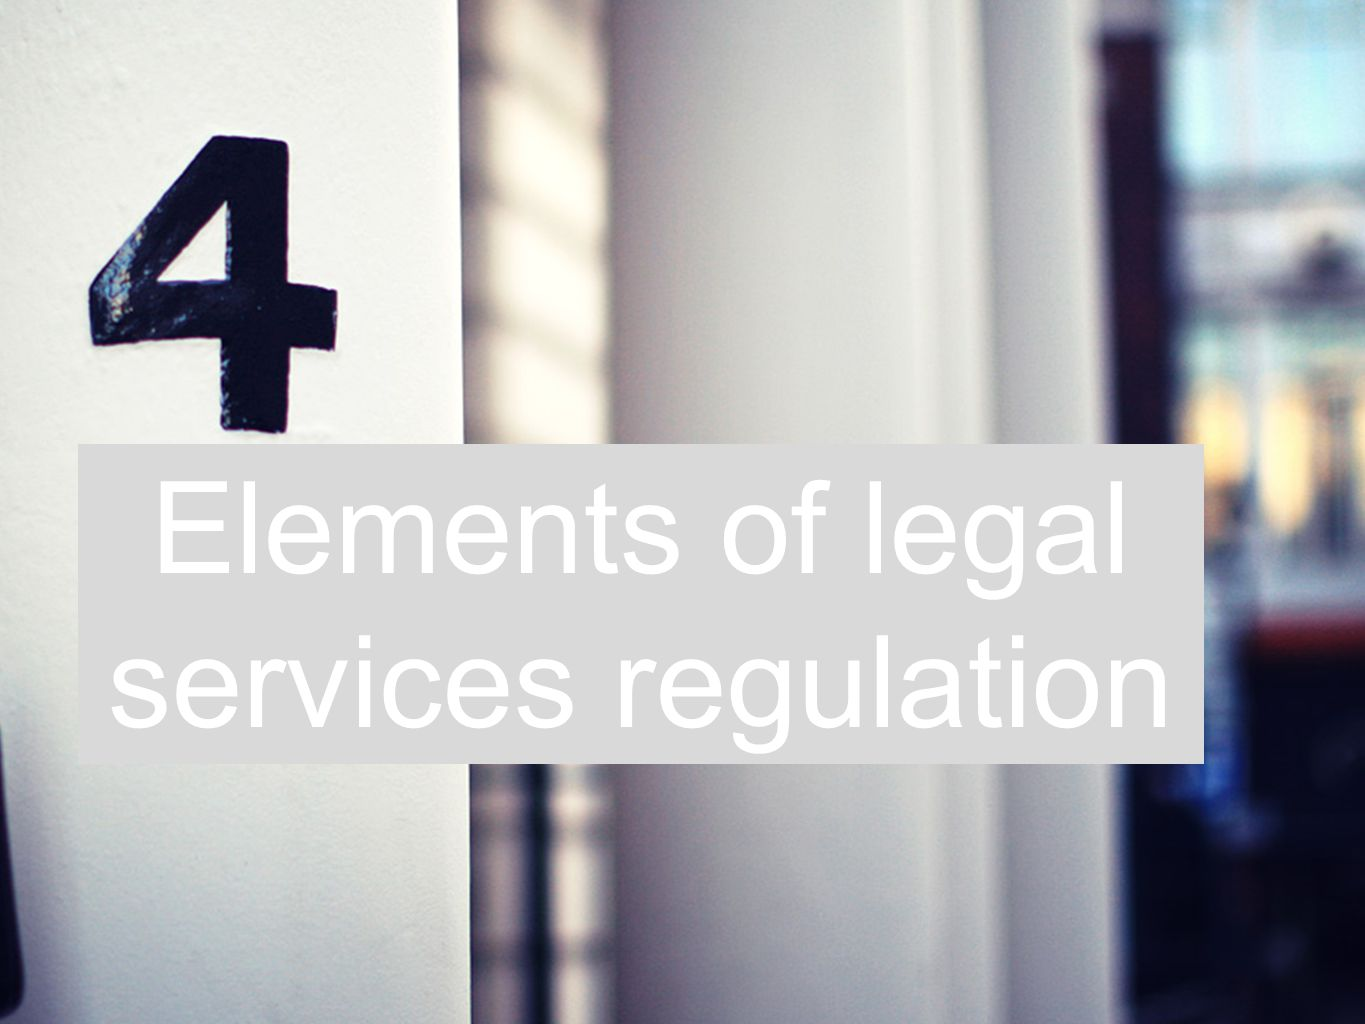 Elements of legal services regulation